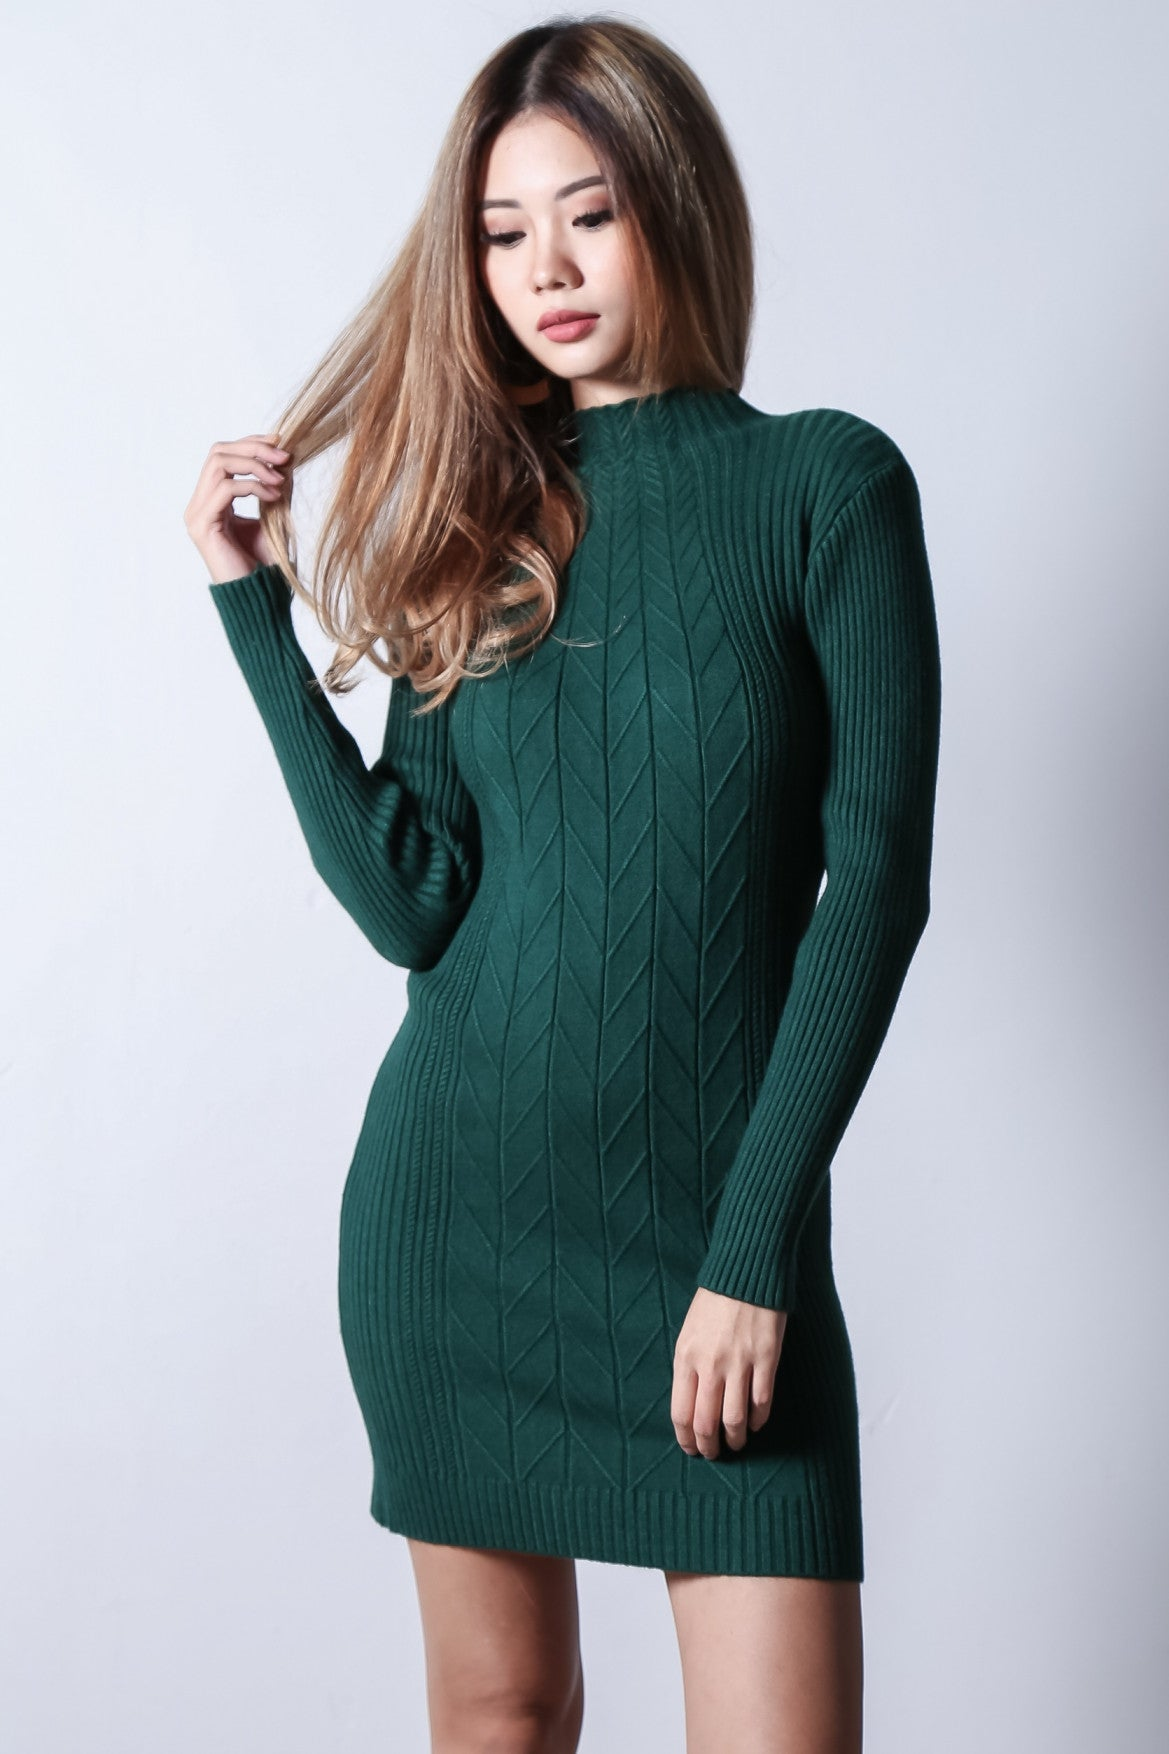 CELESTE CABLE KNIT DRESS IN FOREST - TOPAZETTE